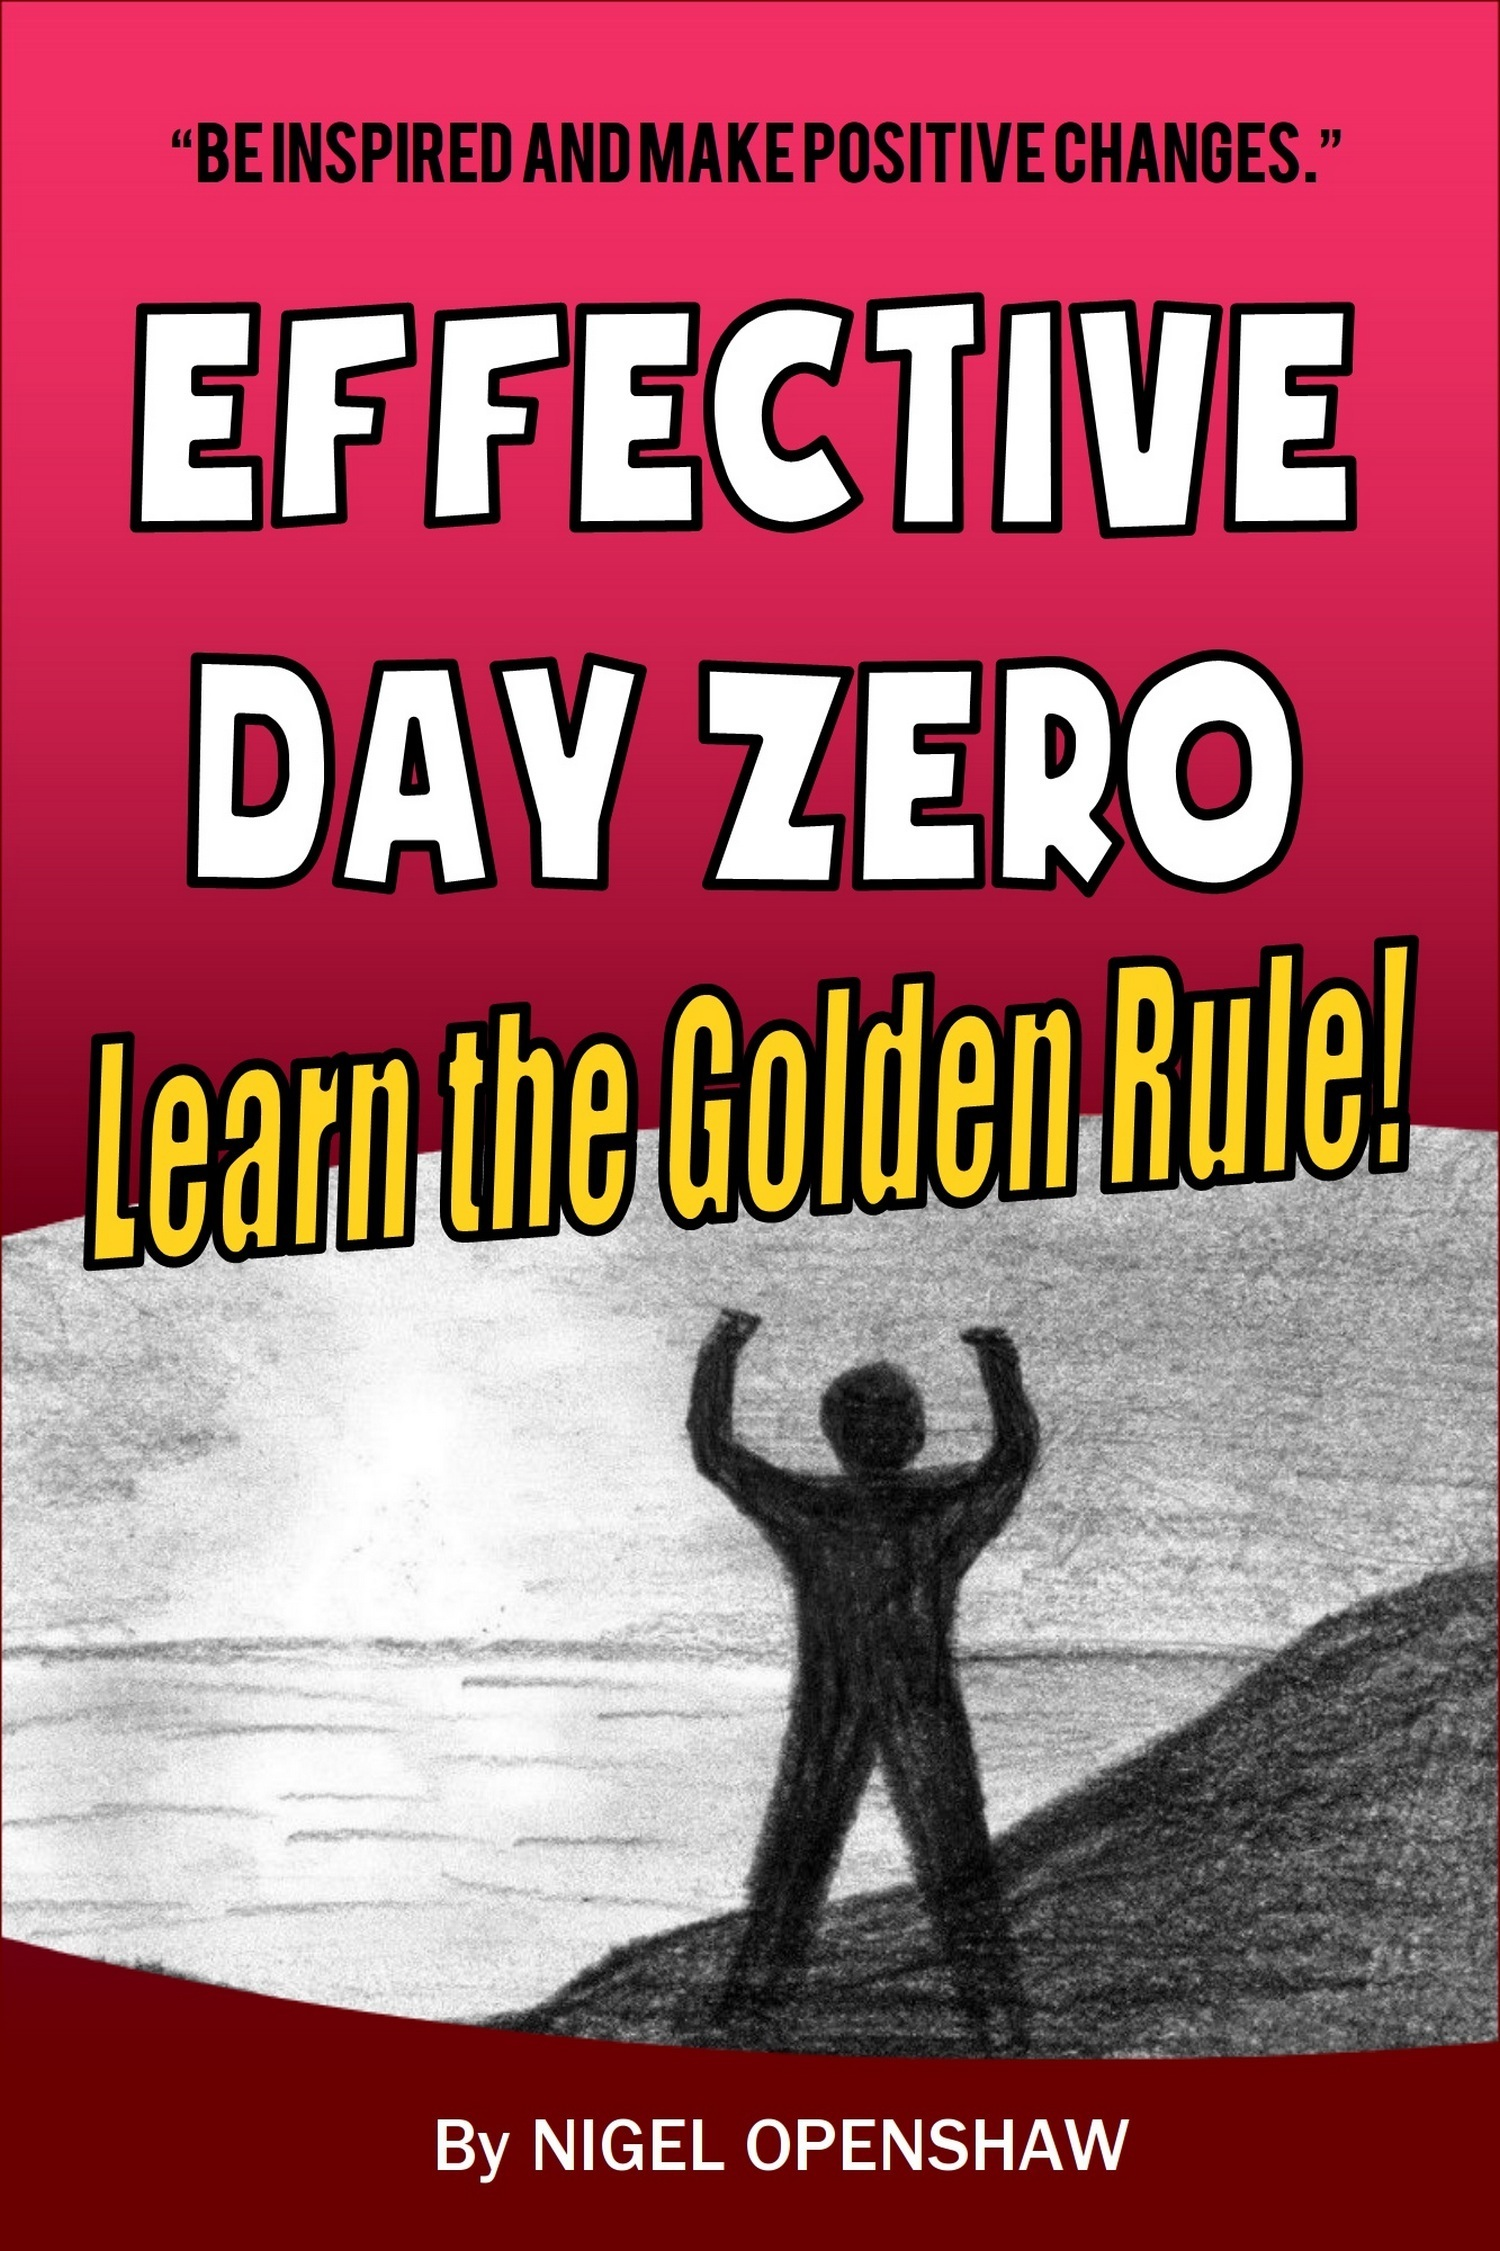 Effective Day Zero: Be Inspired and Make Positive Changes to Your Day Nigel Openshaw